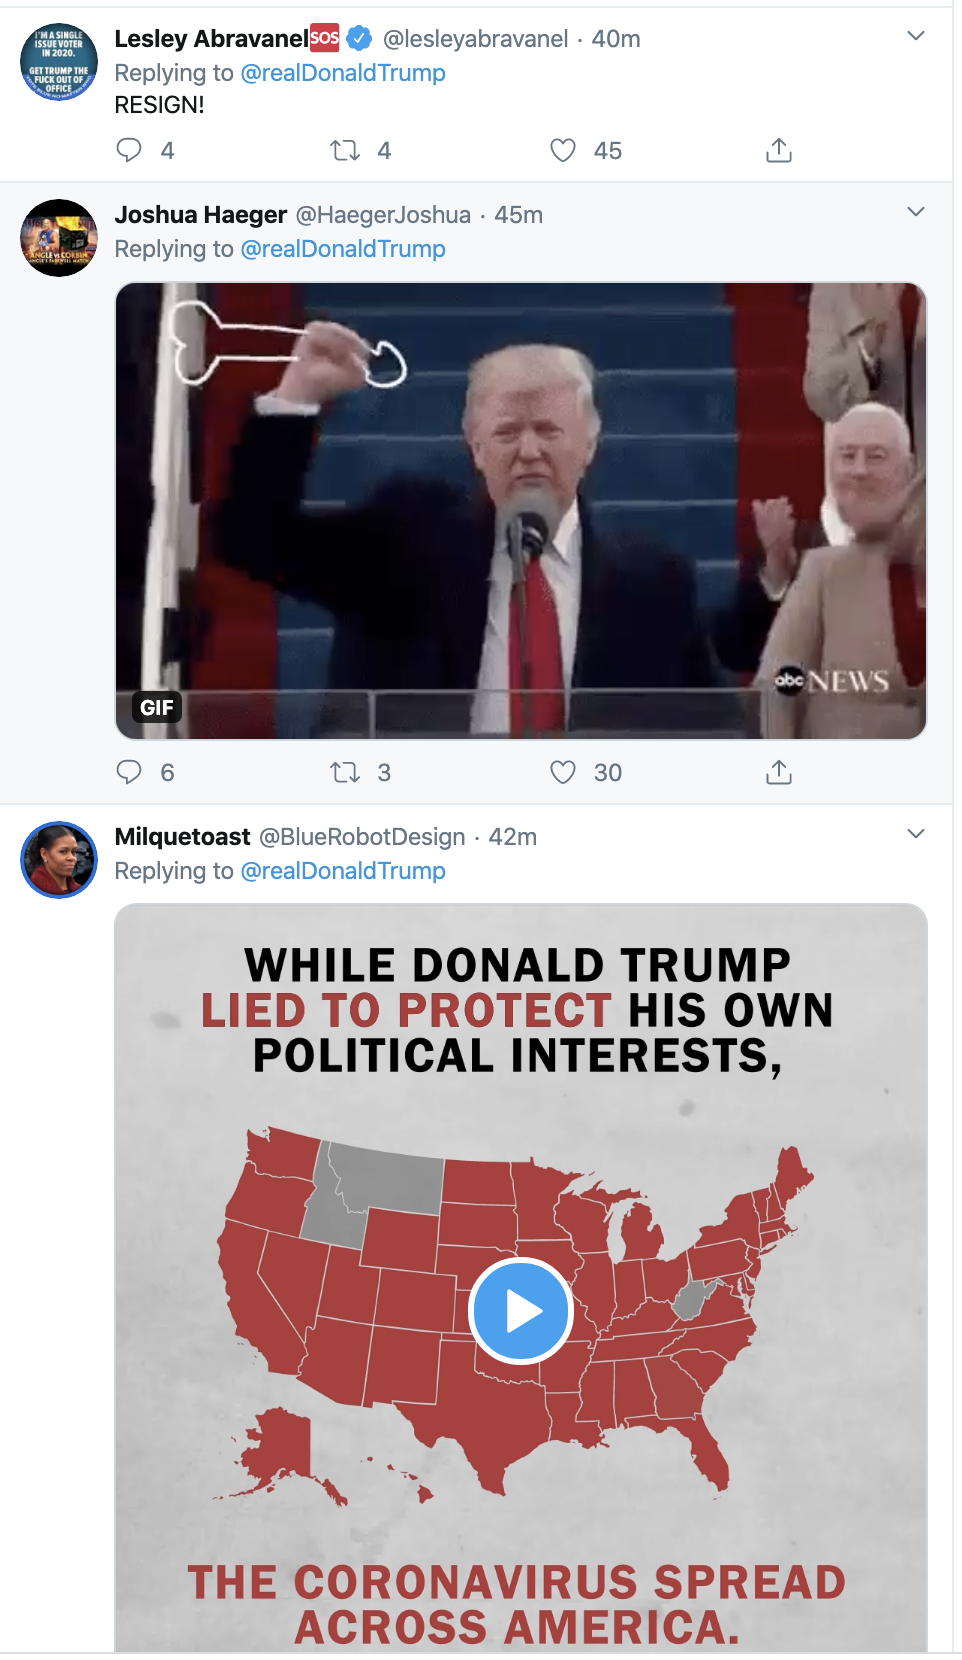 Screen-Shot-2020-03-19-at-10.11.41-AM Trump Tweets COVID-19 Video That Has People Grumbling Election 2020 Featured Healthcare Politics Top Stories